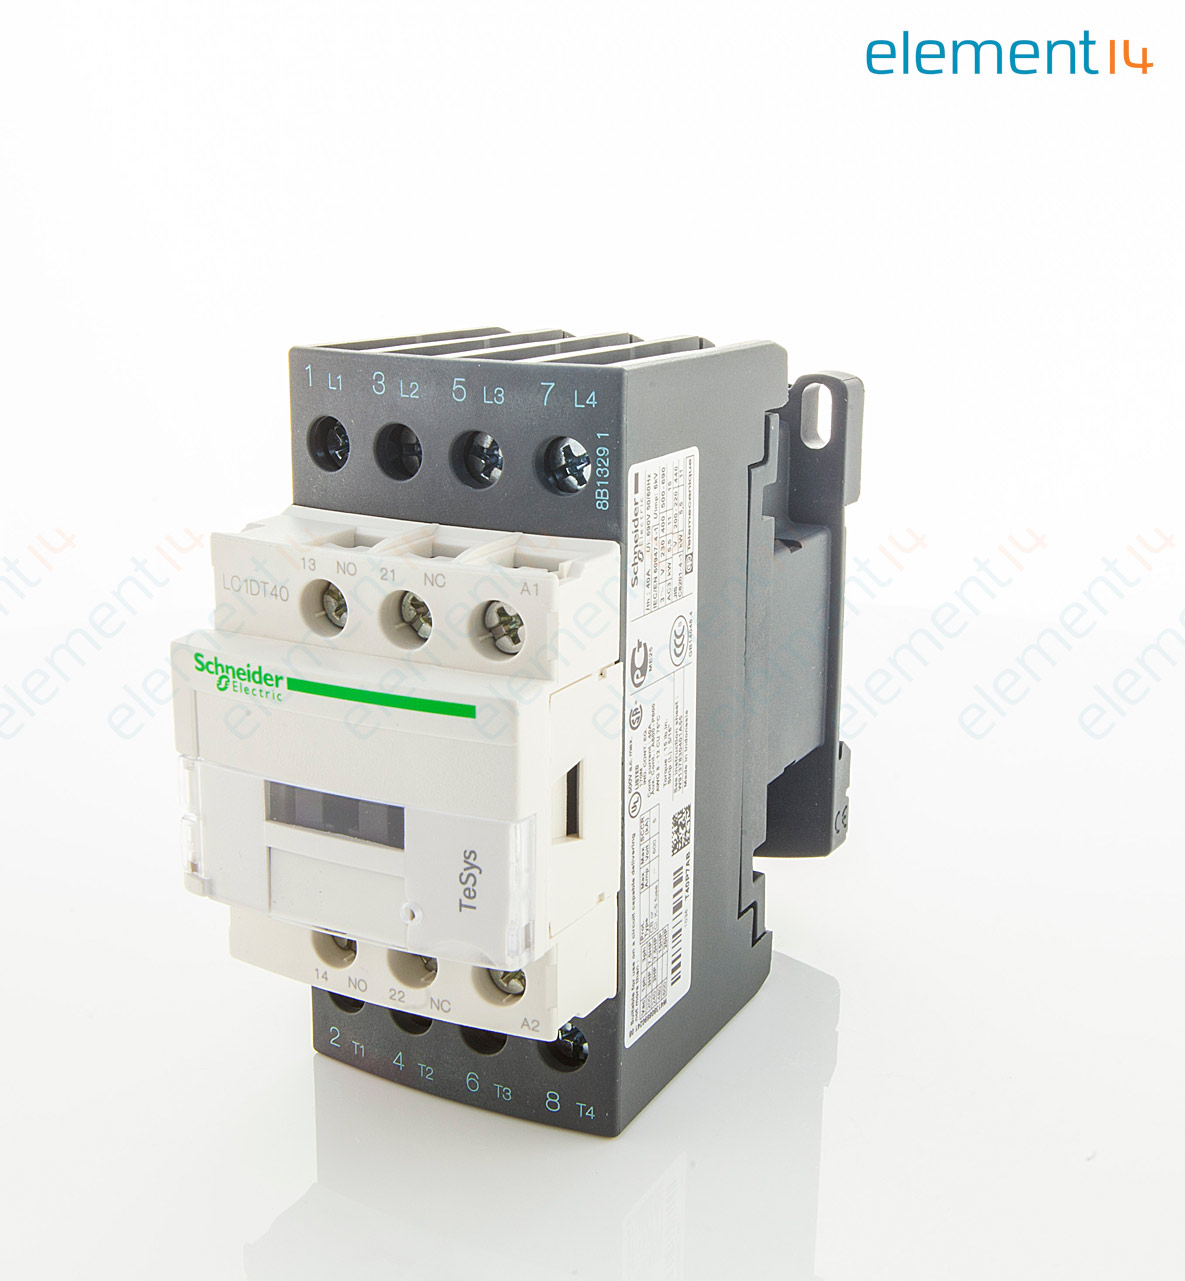 Lc1dt40p7 Schneider Electric Contactor Tesys D Din Rail Under Current Relay 230 Vac 4pno 4 Pole